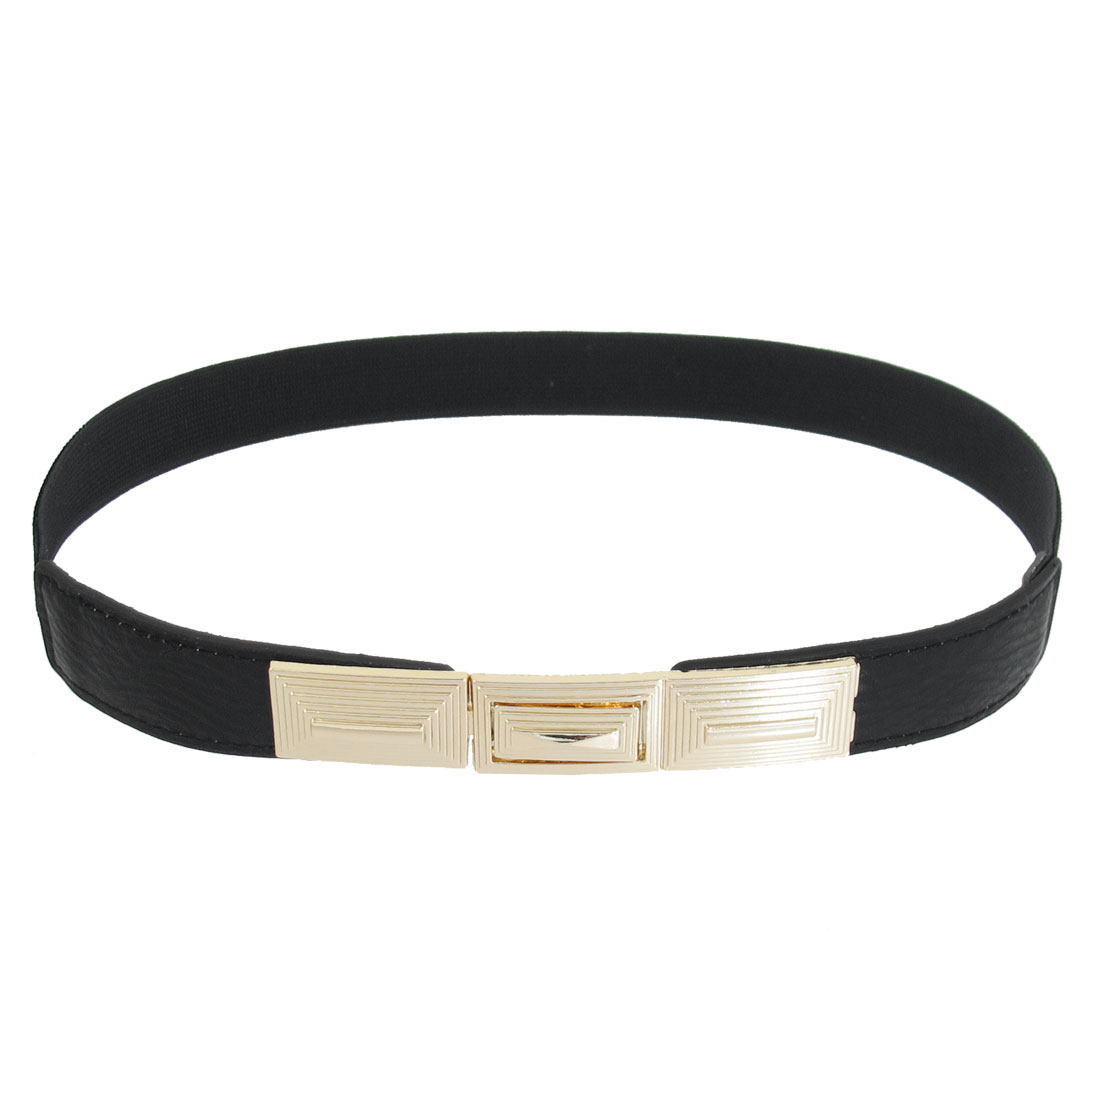 Tierd Stripes Metal Interlocking Buckle Elastic Waist Belt Black for Ladies